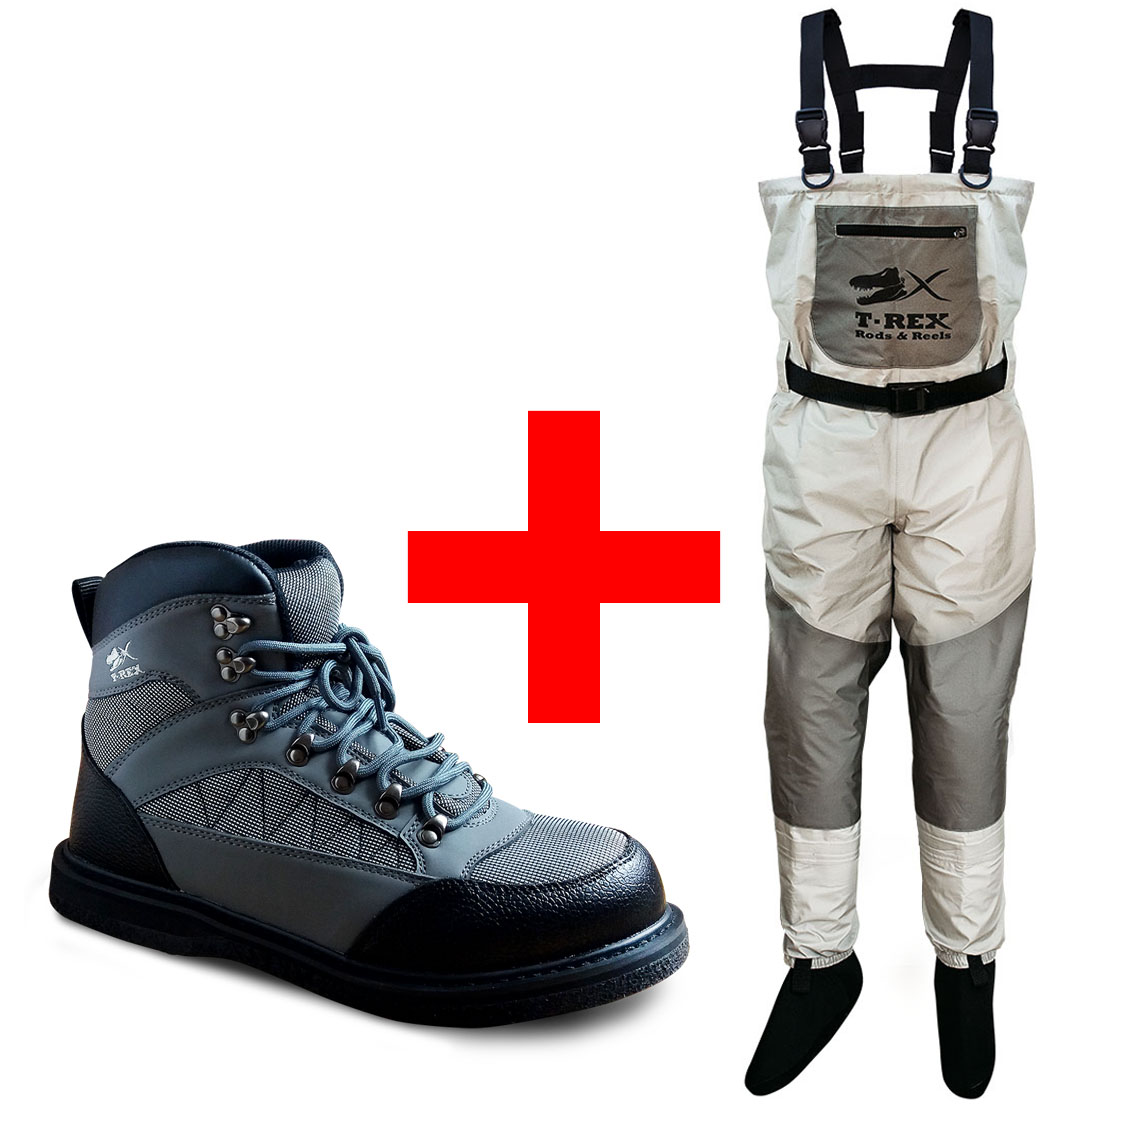 Combo T REX Wader + Boots